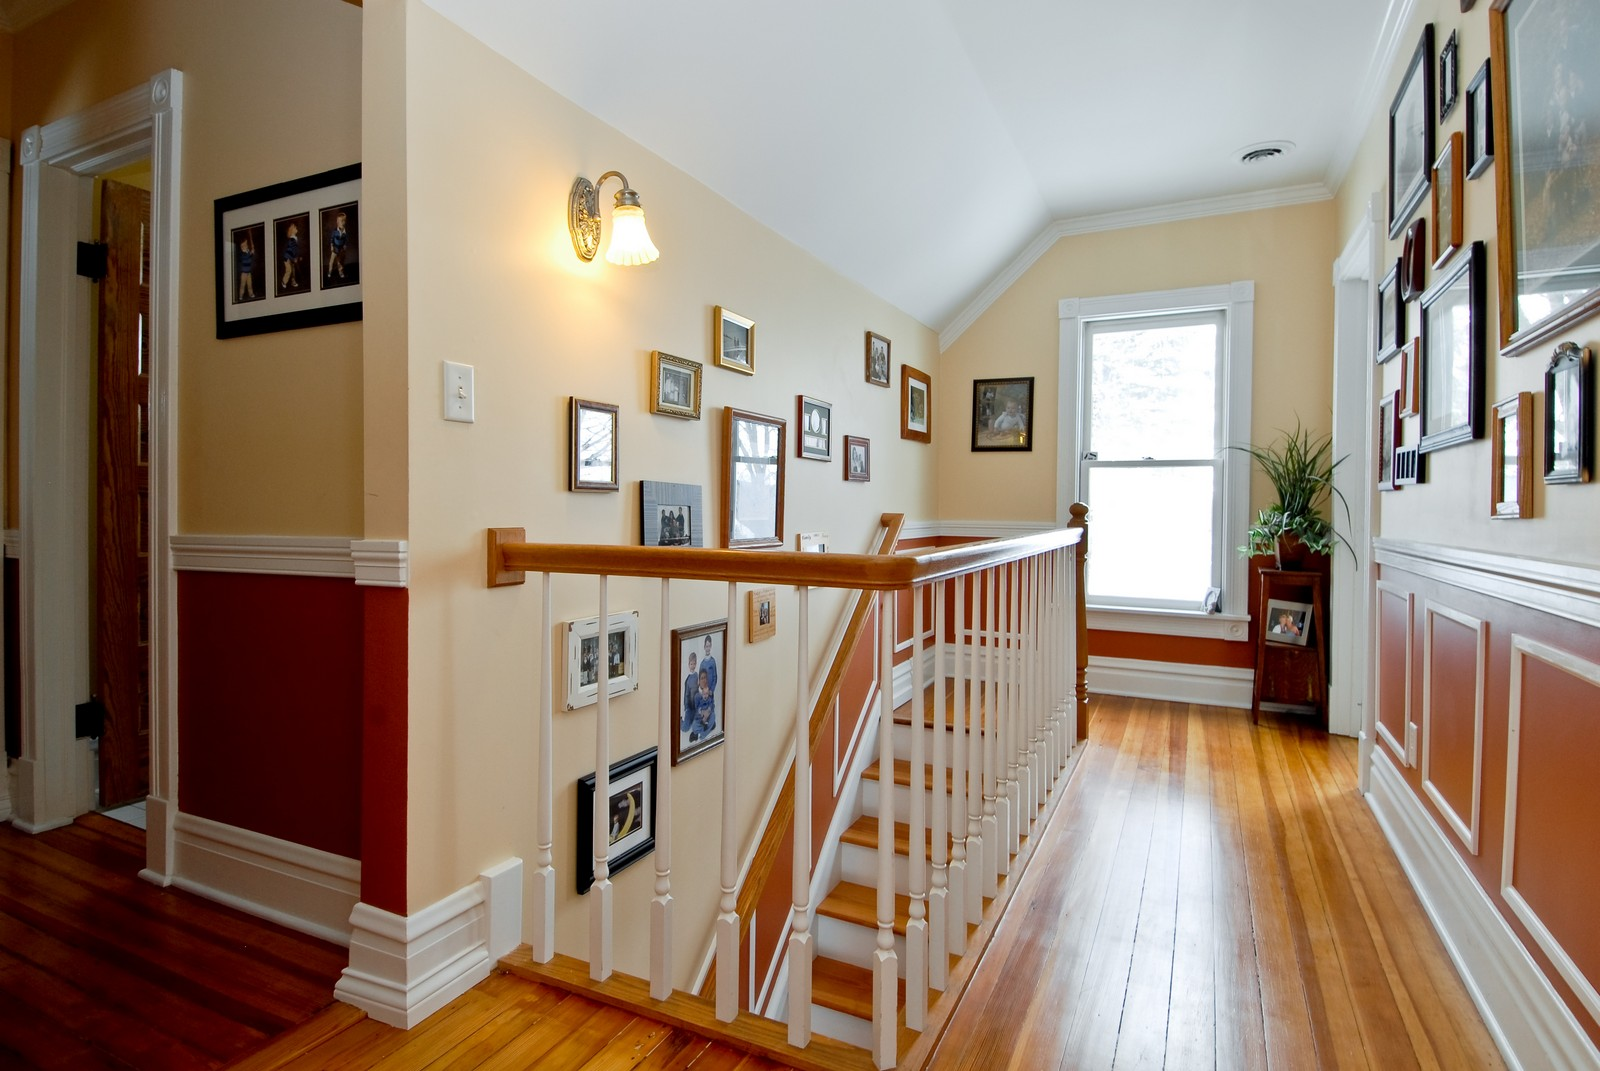 Real Estate Photography - 5N126 Crane, St Charles, IL, 60175 - Hallway